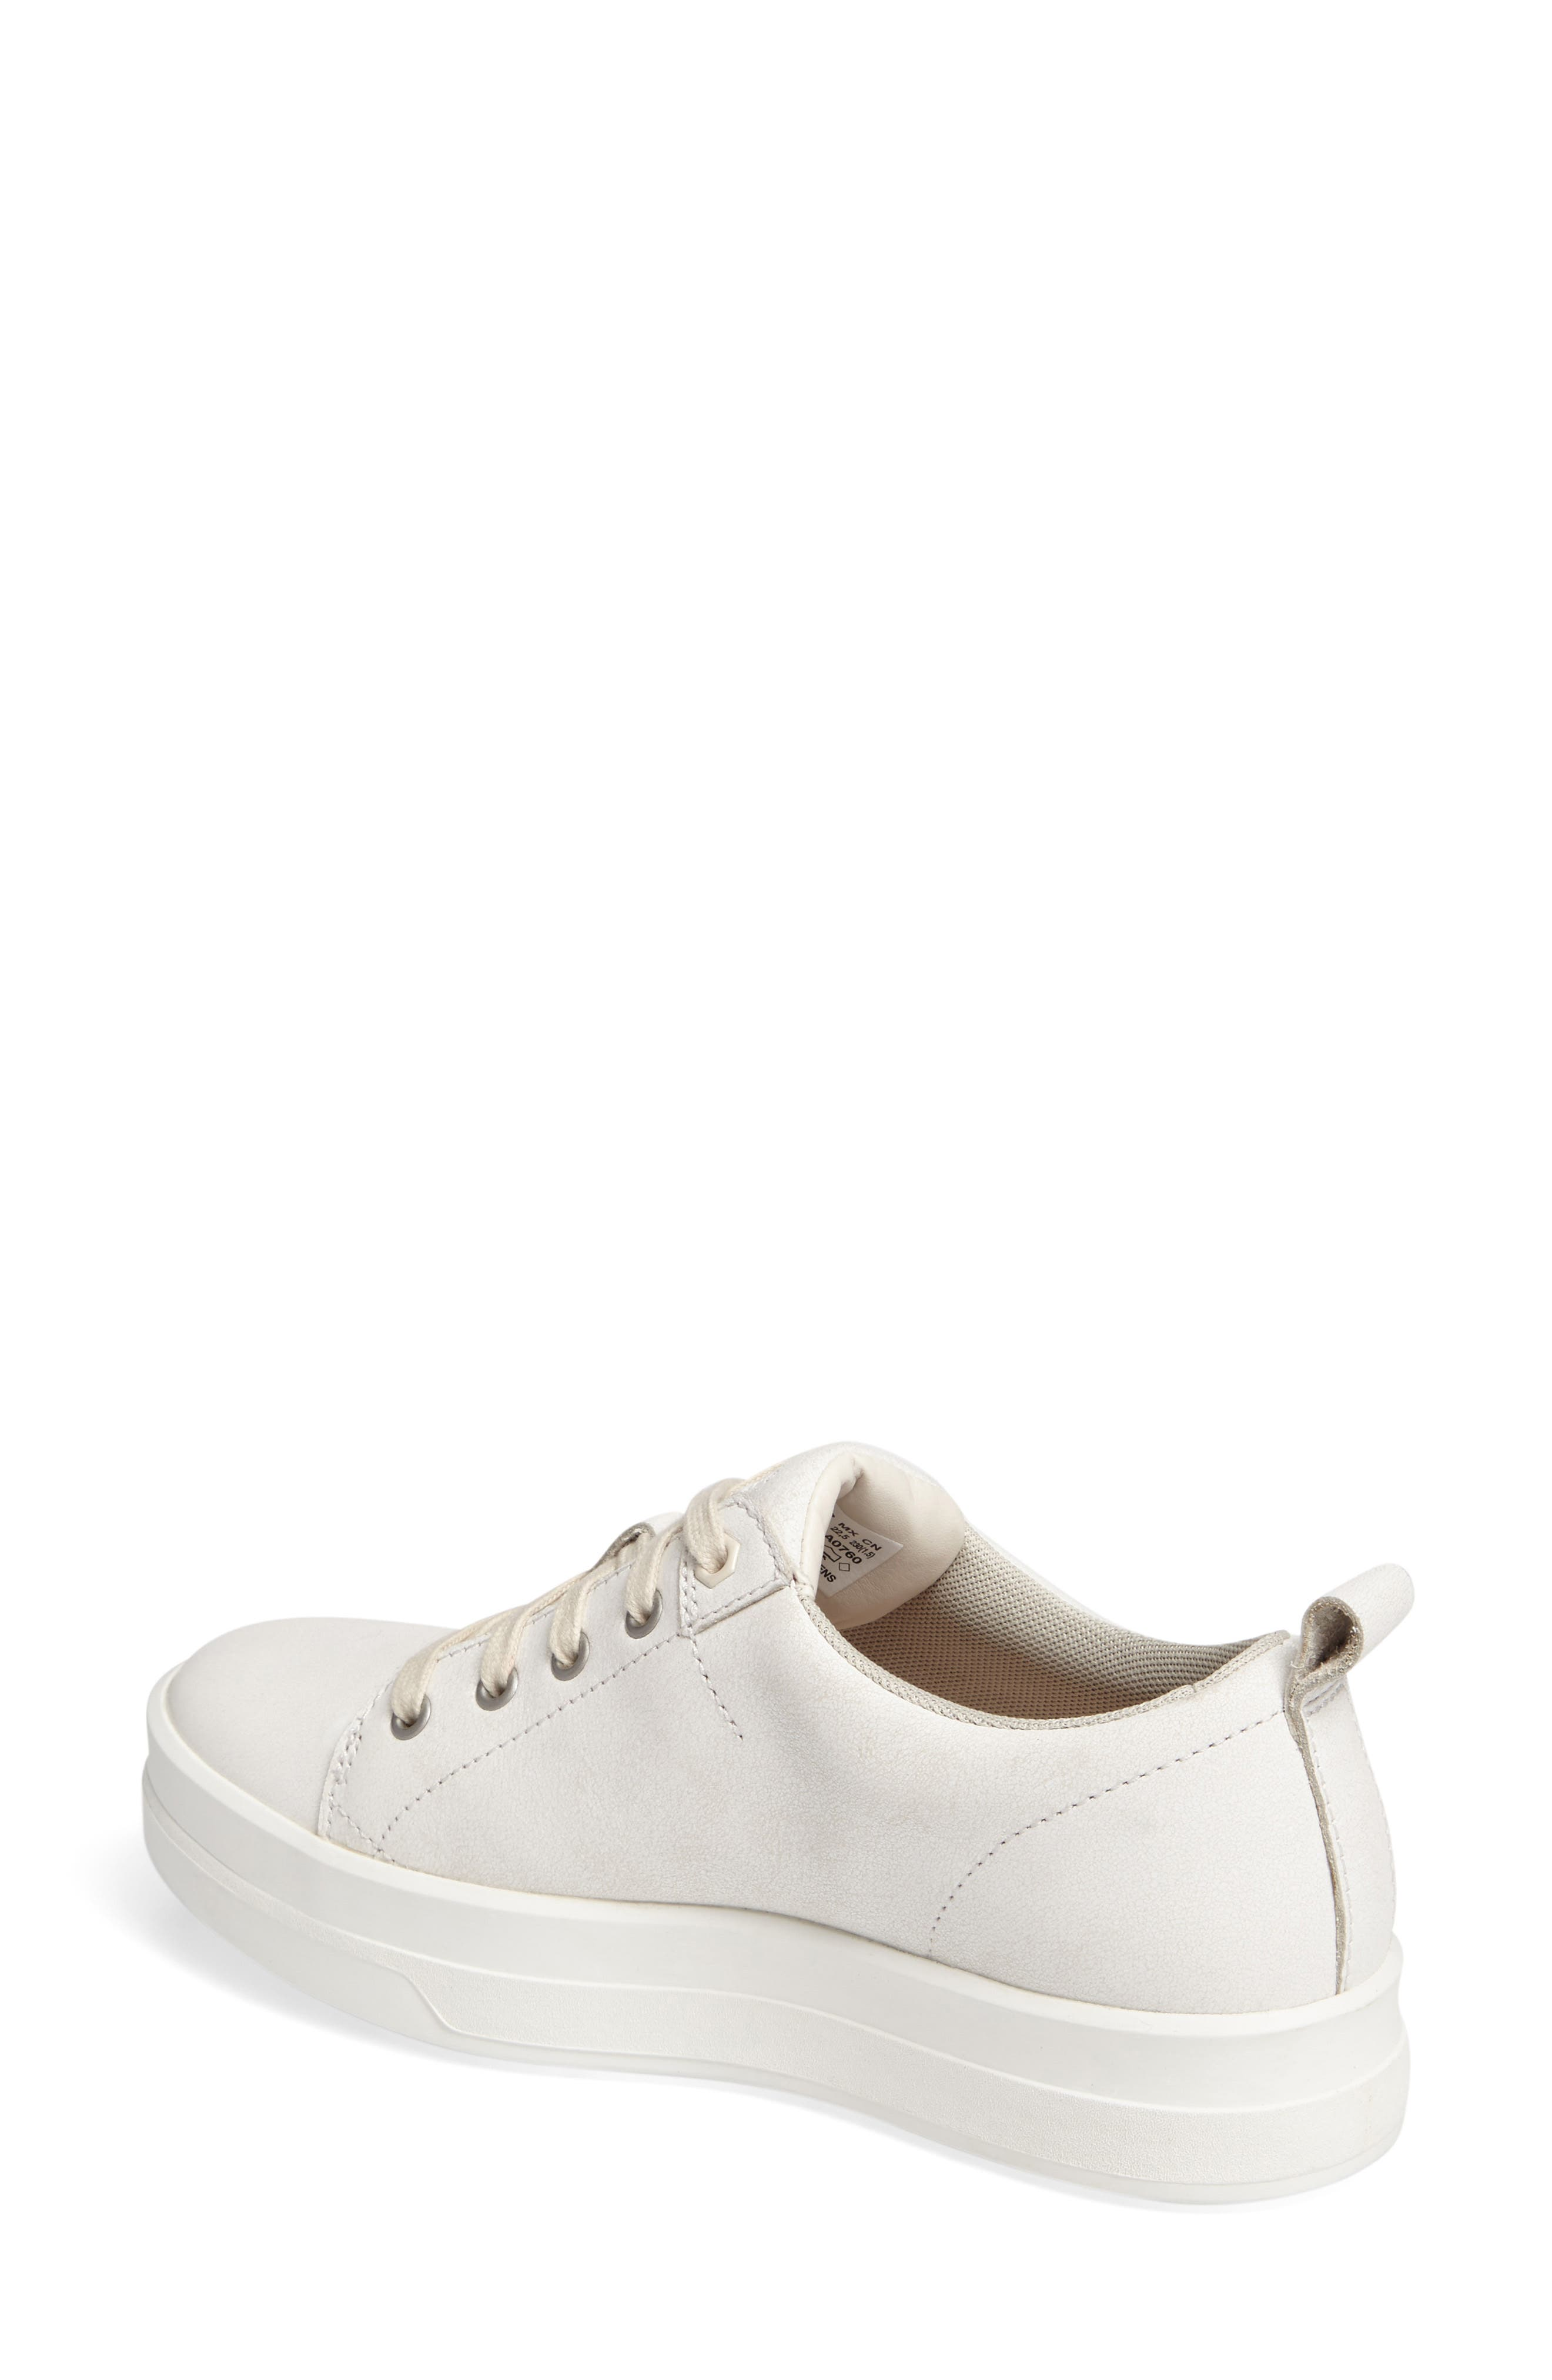 Mayliss Oxford Sneaker,                             Alternate thumbnail 2, color,                             White Mystic Snake Suede